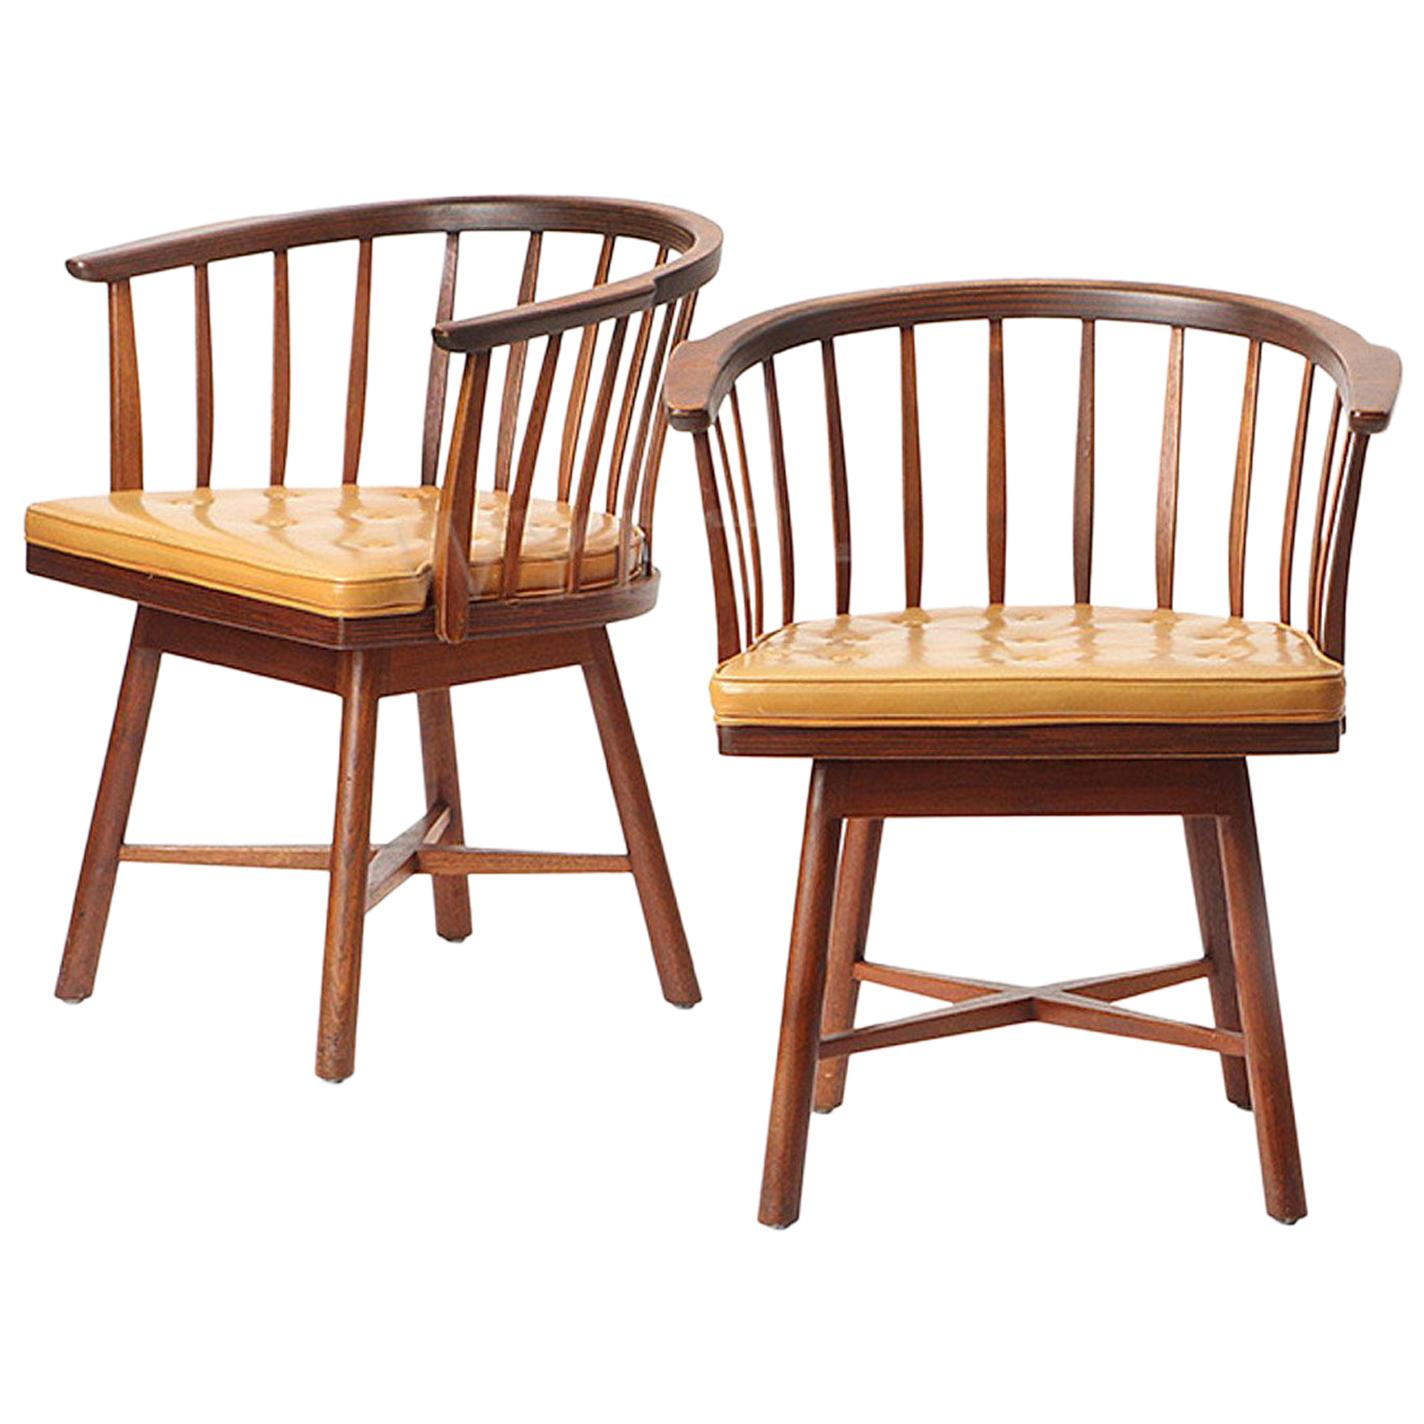 Pair of Swiveling Barrel Back Chairs by Edward Wormley